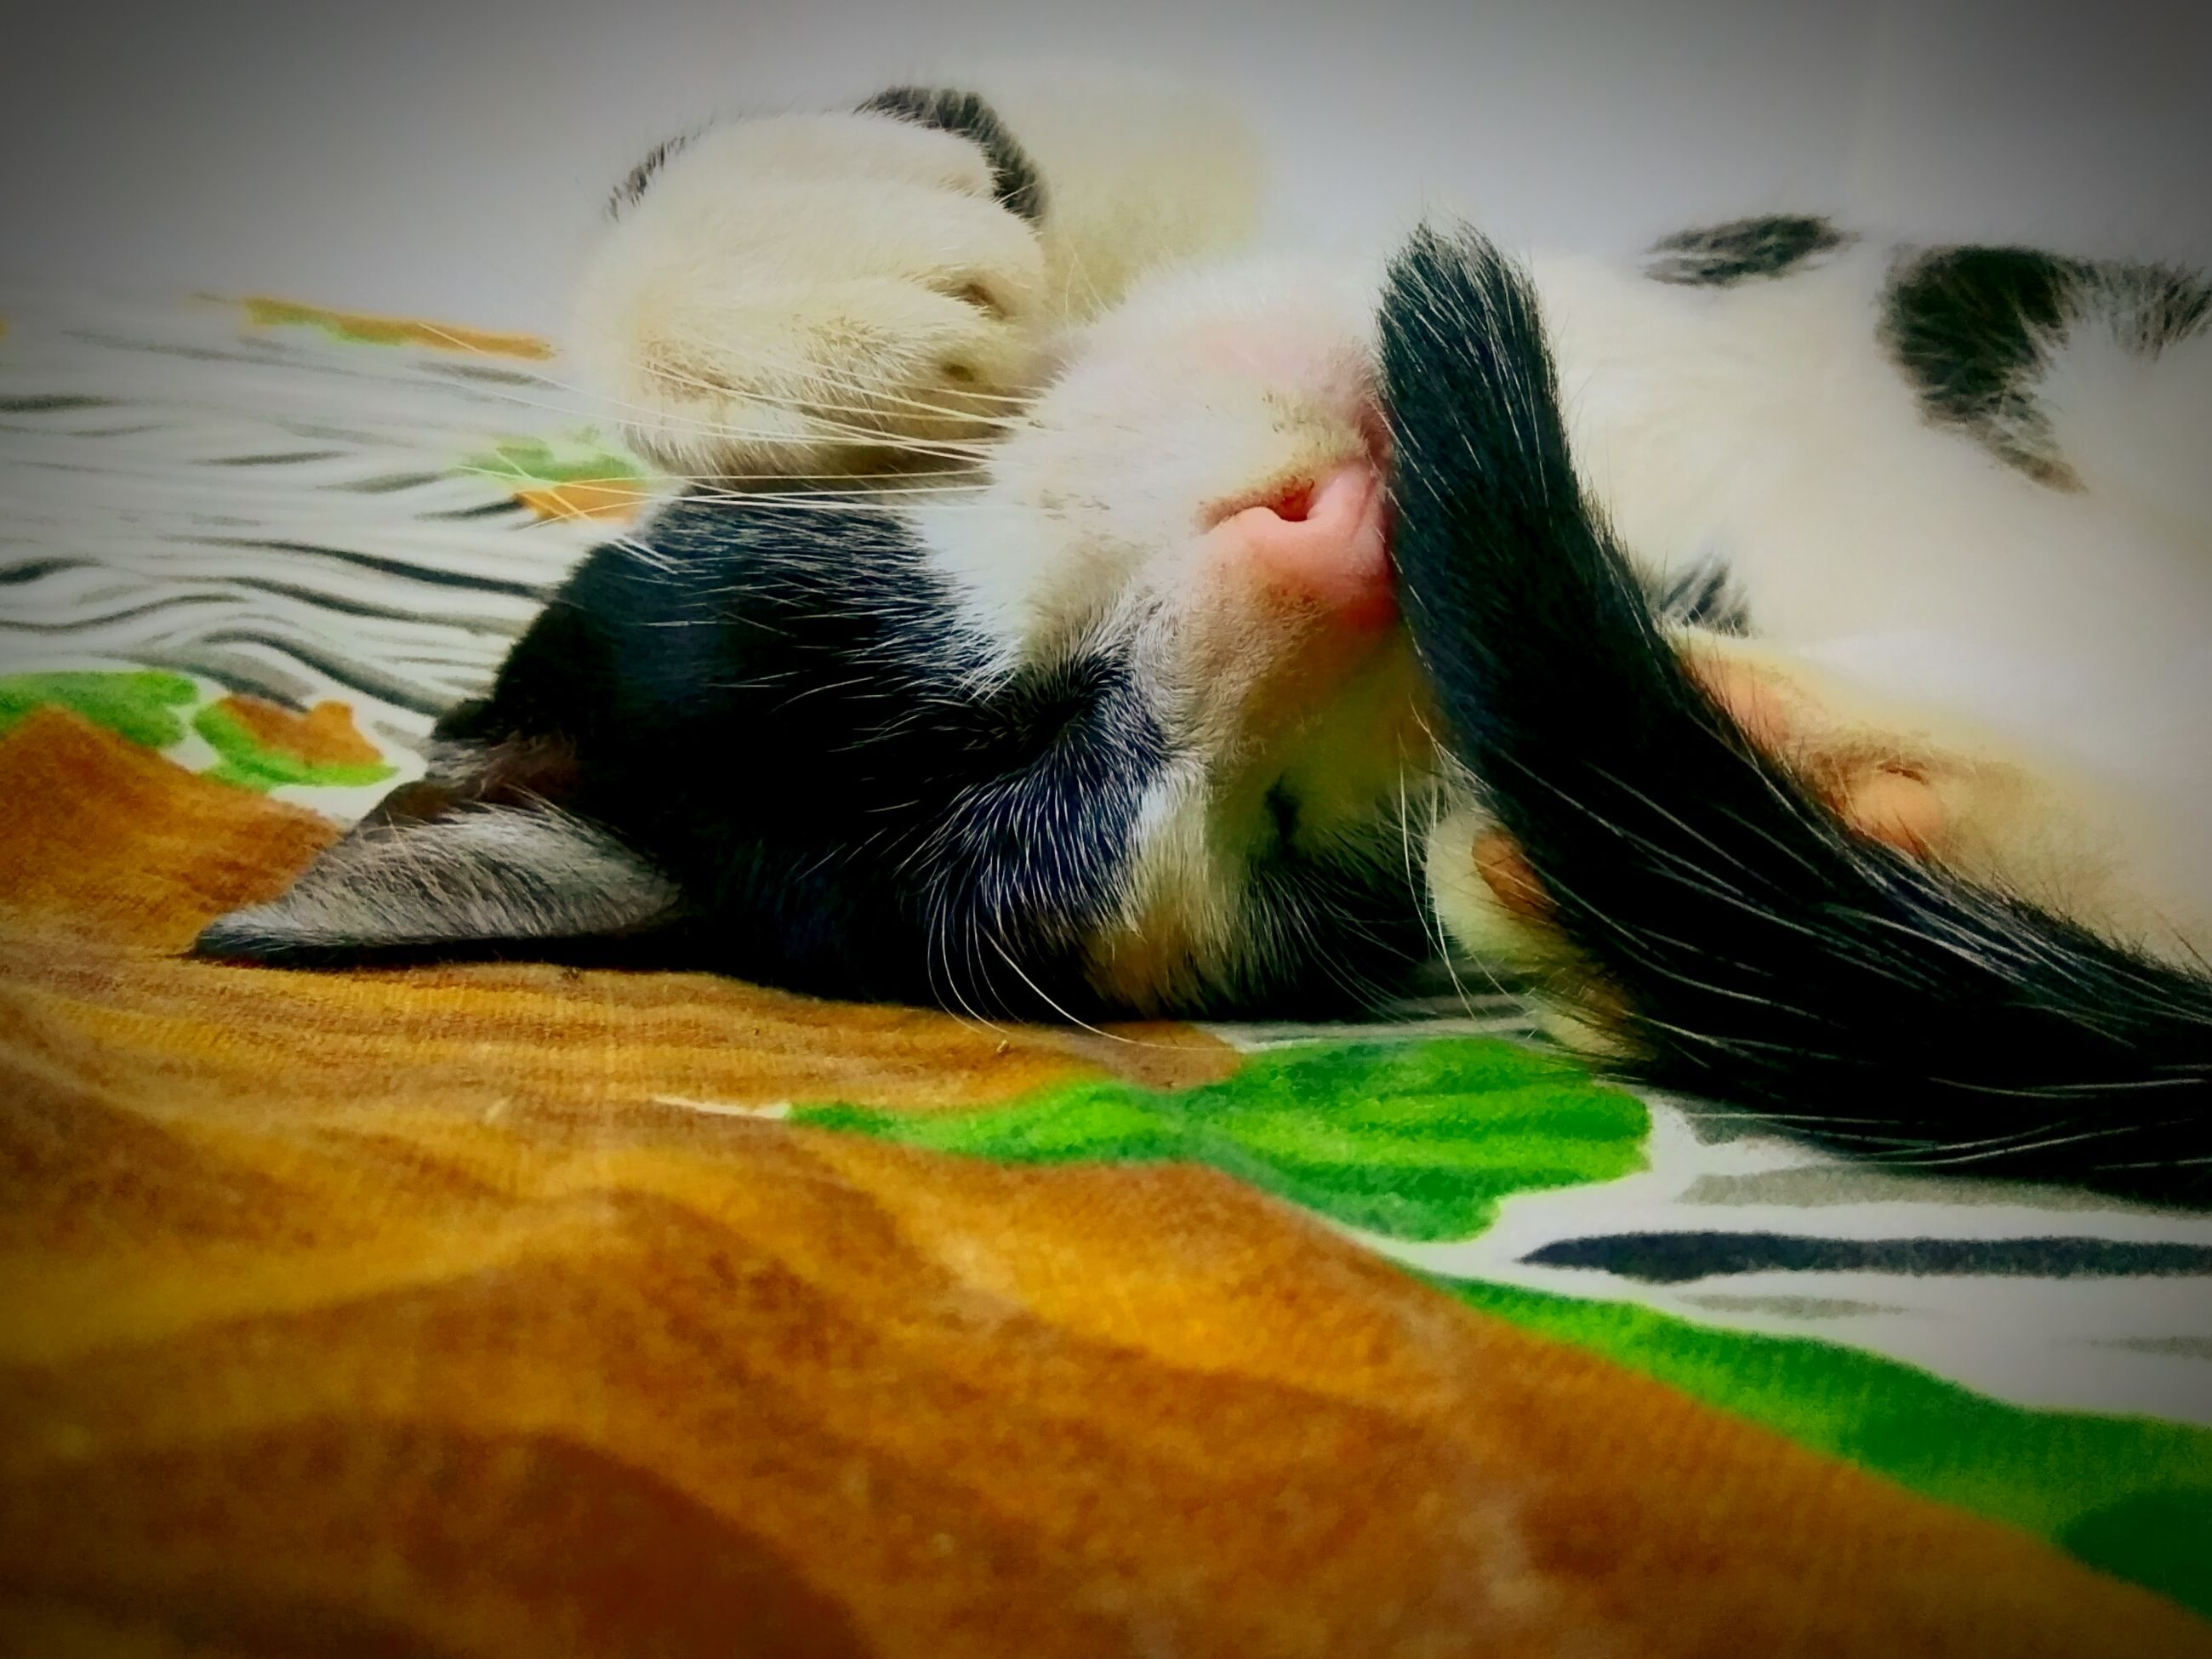 one animal, animal themes, pets, domestic animals, mammal, indoors, close-up, domestic cat, dog, animal body part, feline, selective focus, vertebrate, cat, zoology, animal, loyalty, pampered pets, animal head, relaxation, animal hair, whisker, snout, at home, no people, animal nose